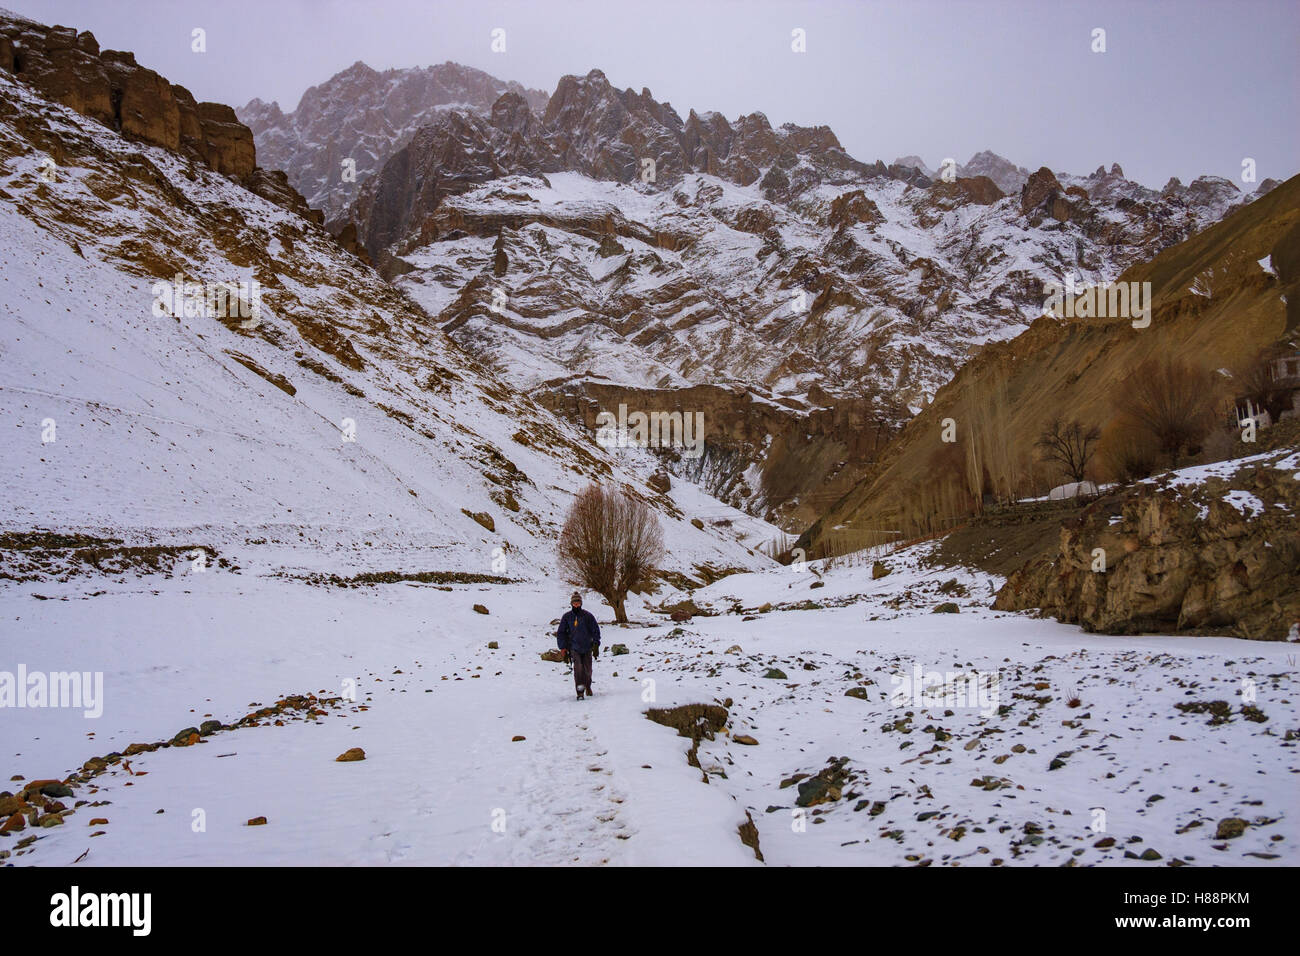 Ladakh Winter Trek - Stock Image